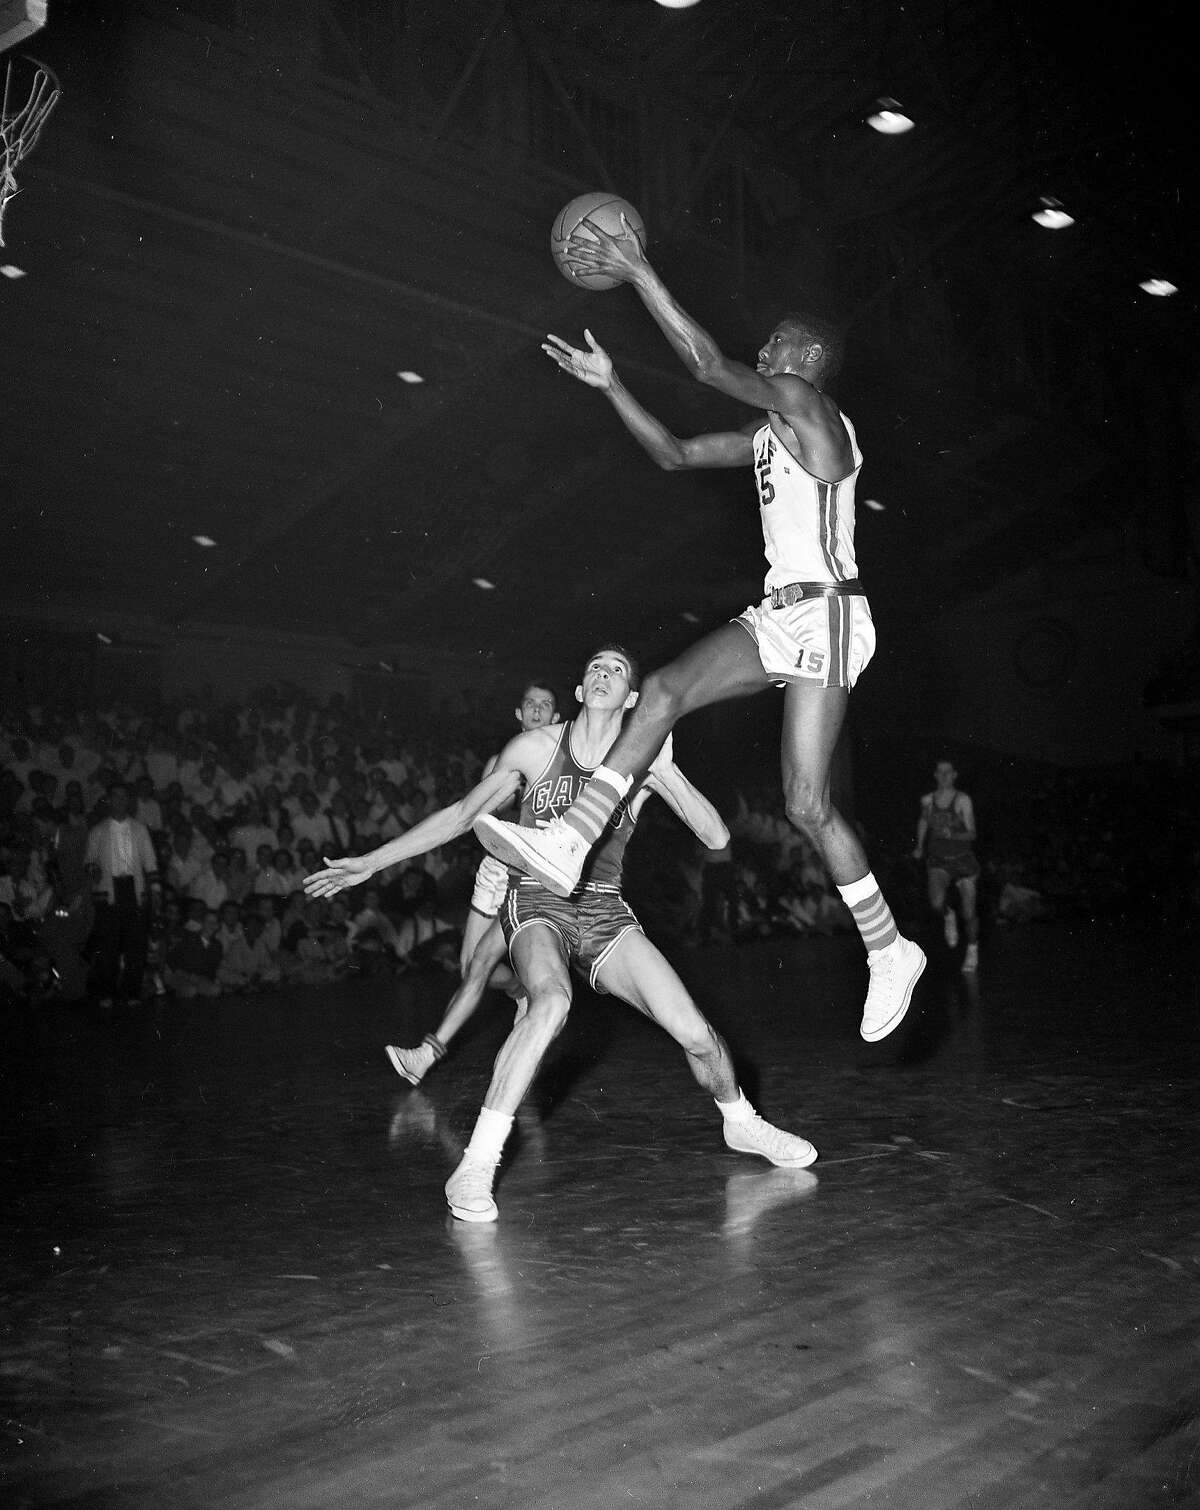 native1211 Basketball championship CBA game between USF Dons Vs St. Mary's at Kezar, March 5, 1957, USF's Eugene Brown with the ball. Dons win 62-41.